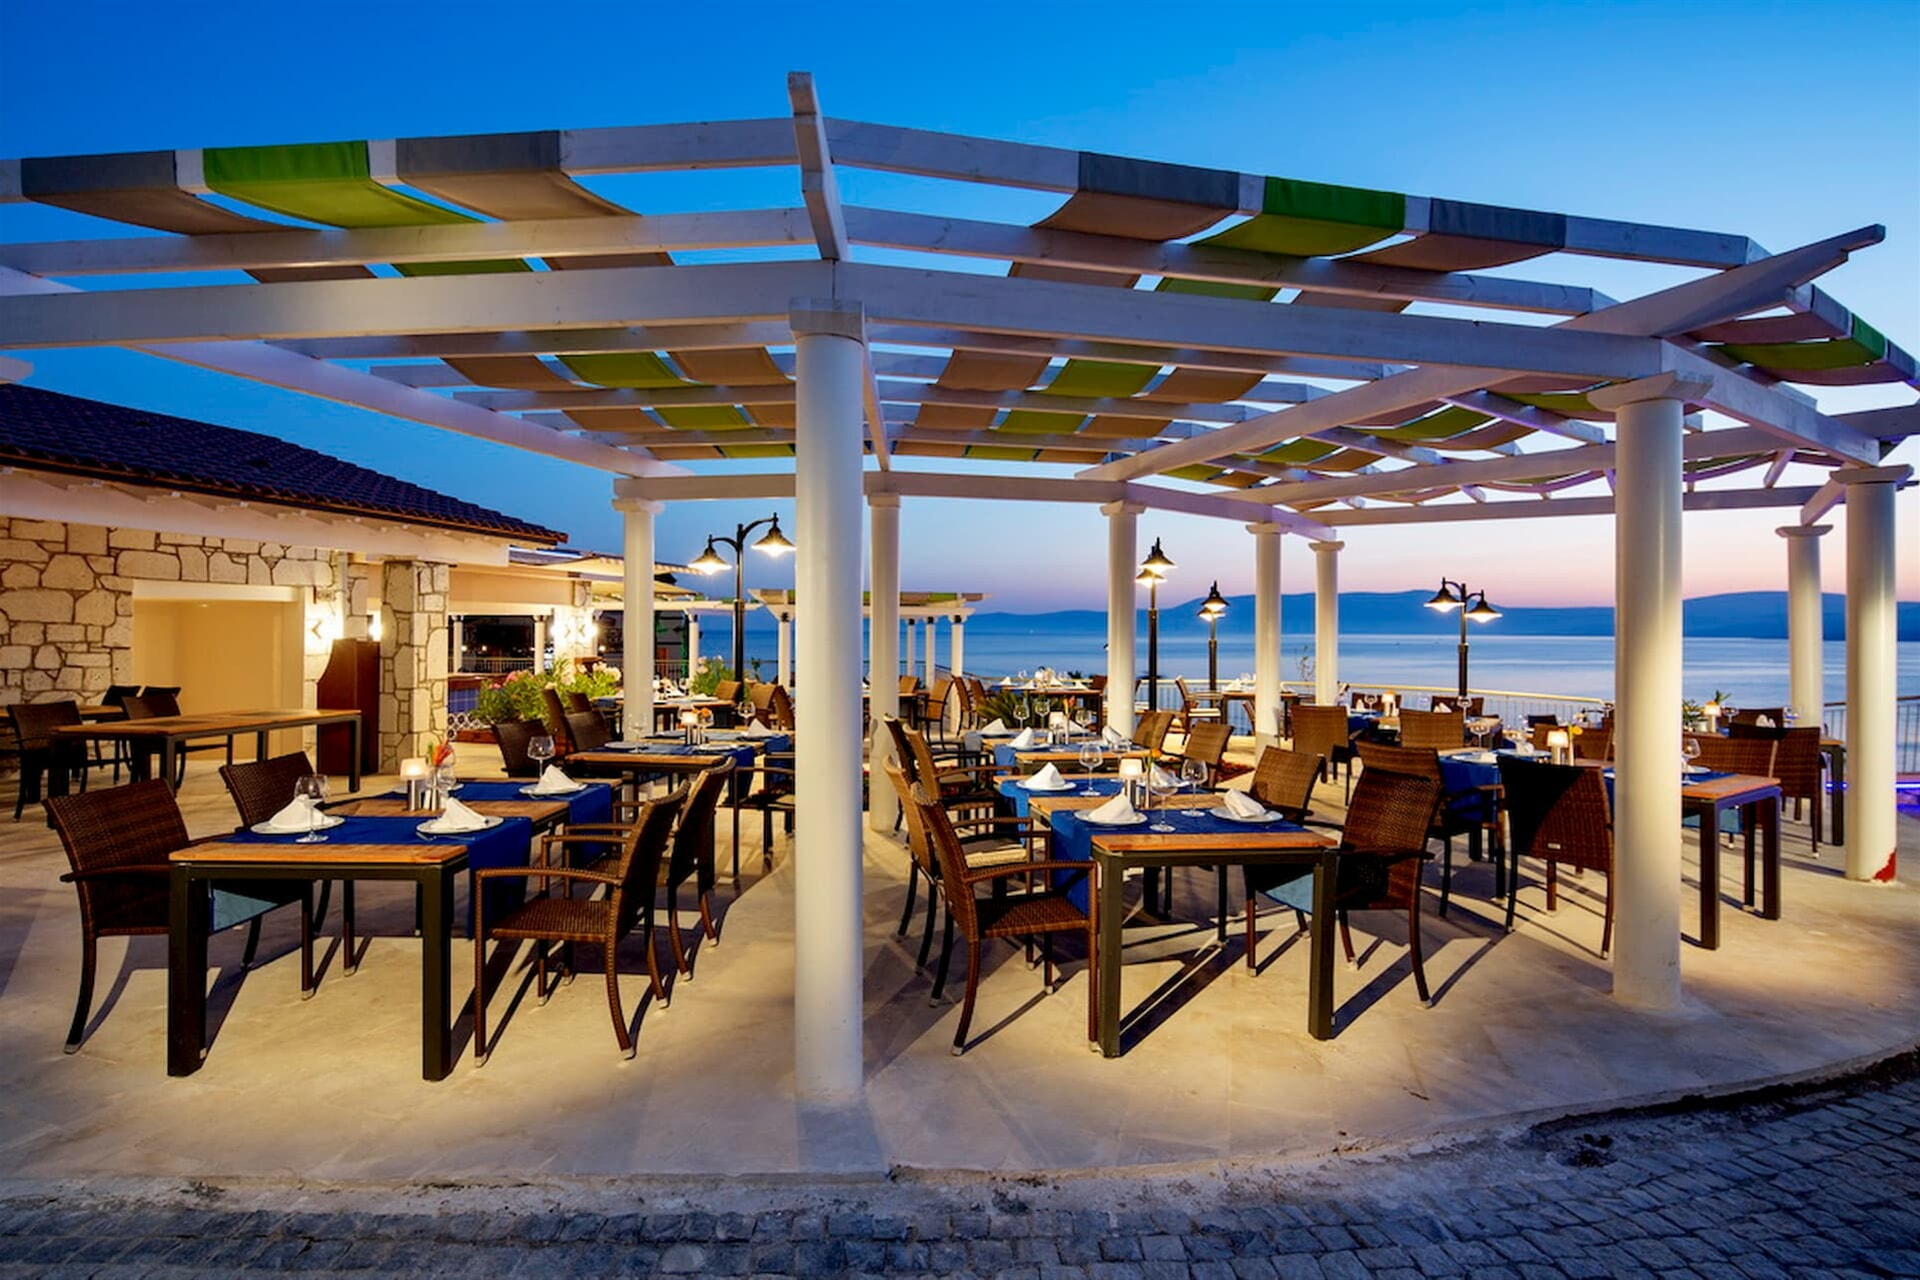 Seasonal fish and seafood meu accompanied by a romantic landspace will add color to your evinings.